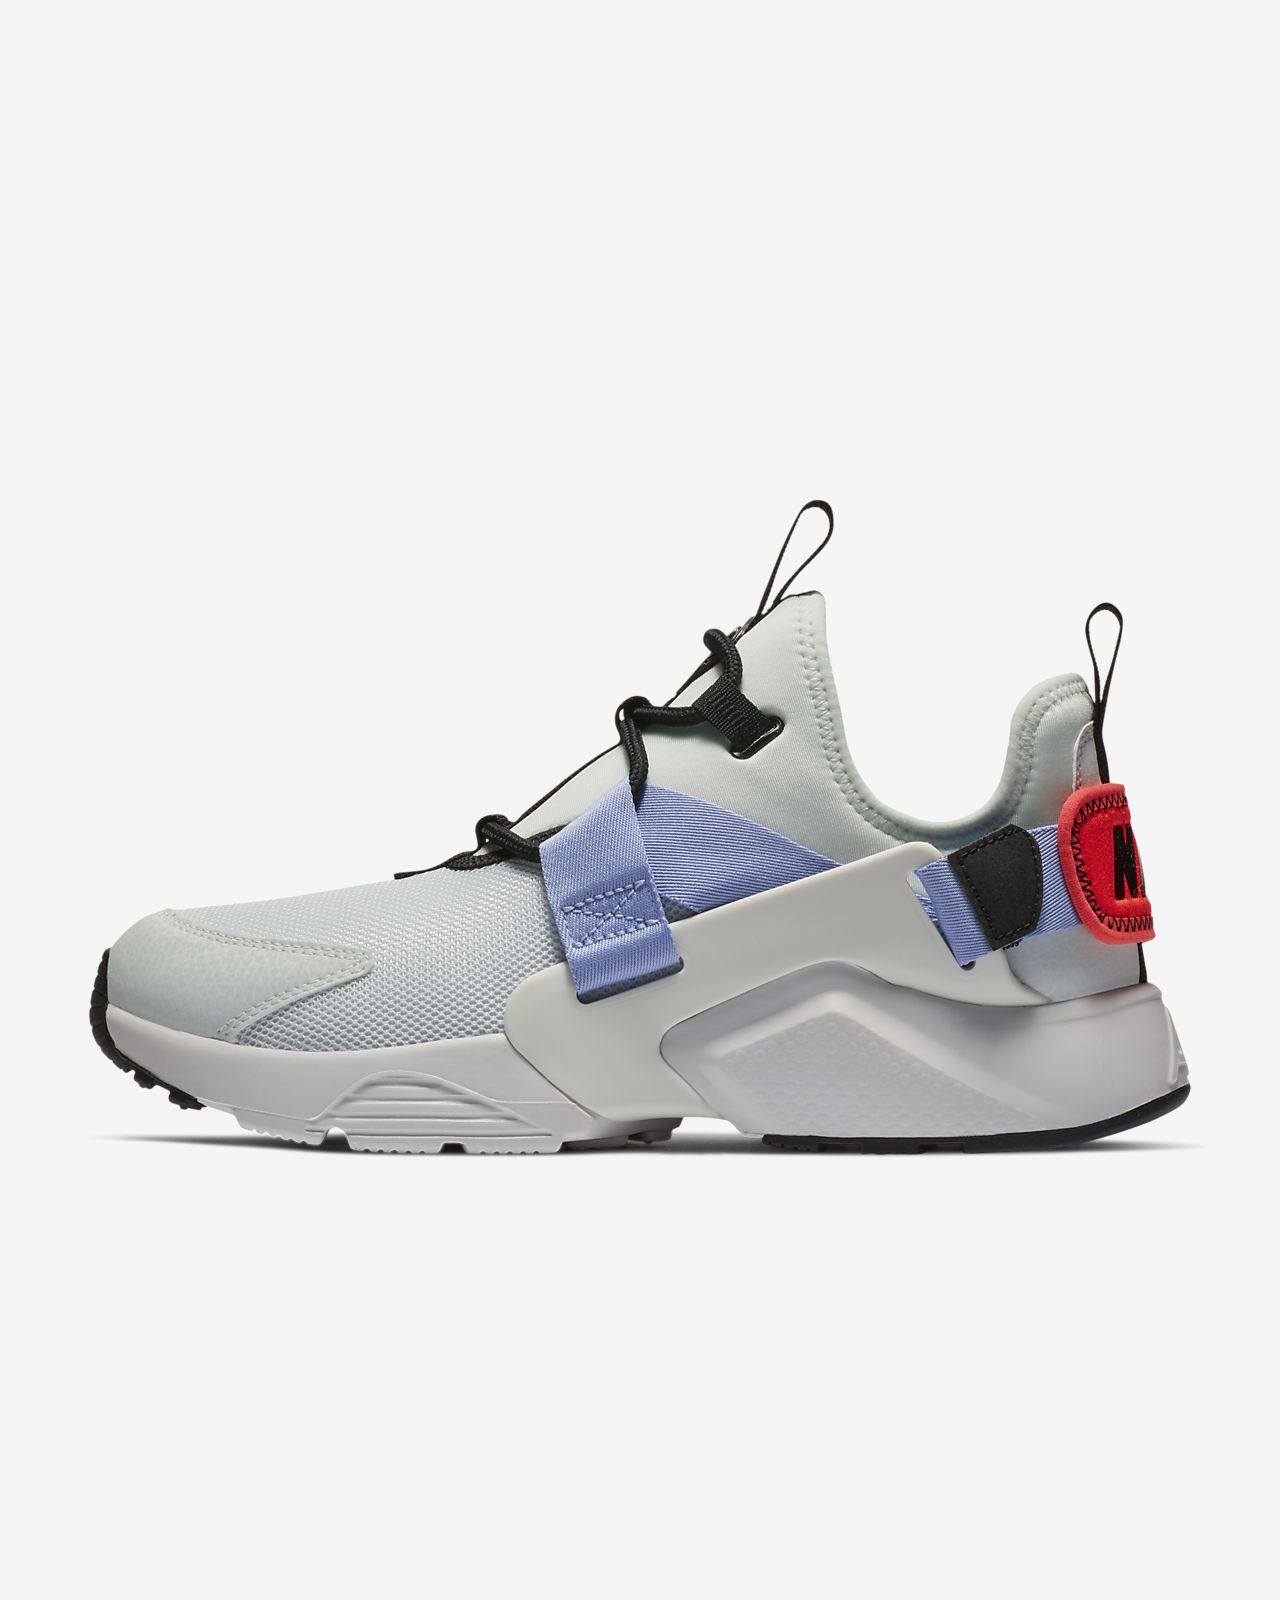 540c2f27ea3a Nike Air Huarache City Low Women s Shoe. Nike.com